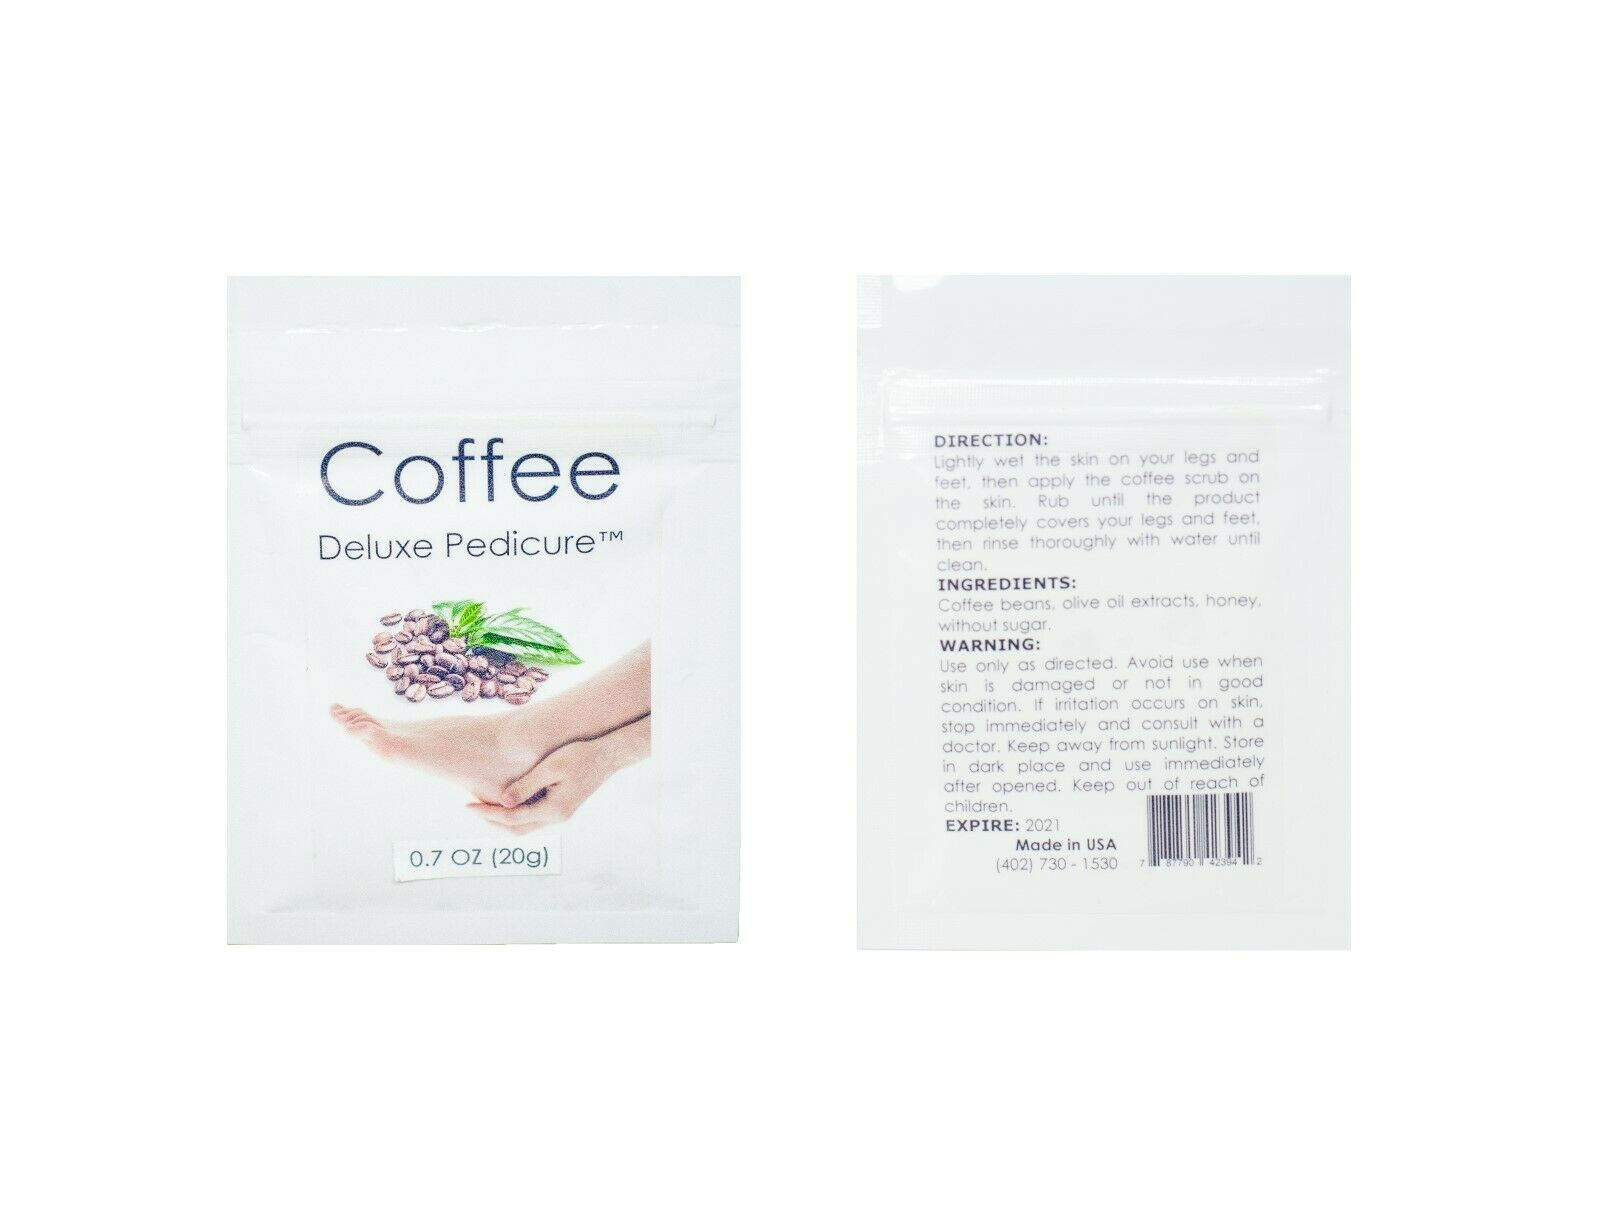 Coffee Deluxe Pedicure 1 pack (0.7 oz - 20g)